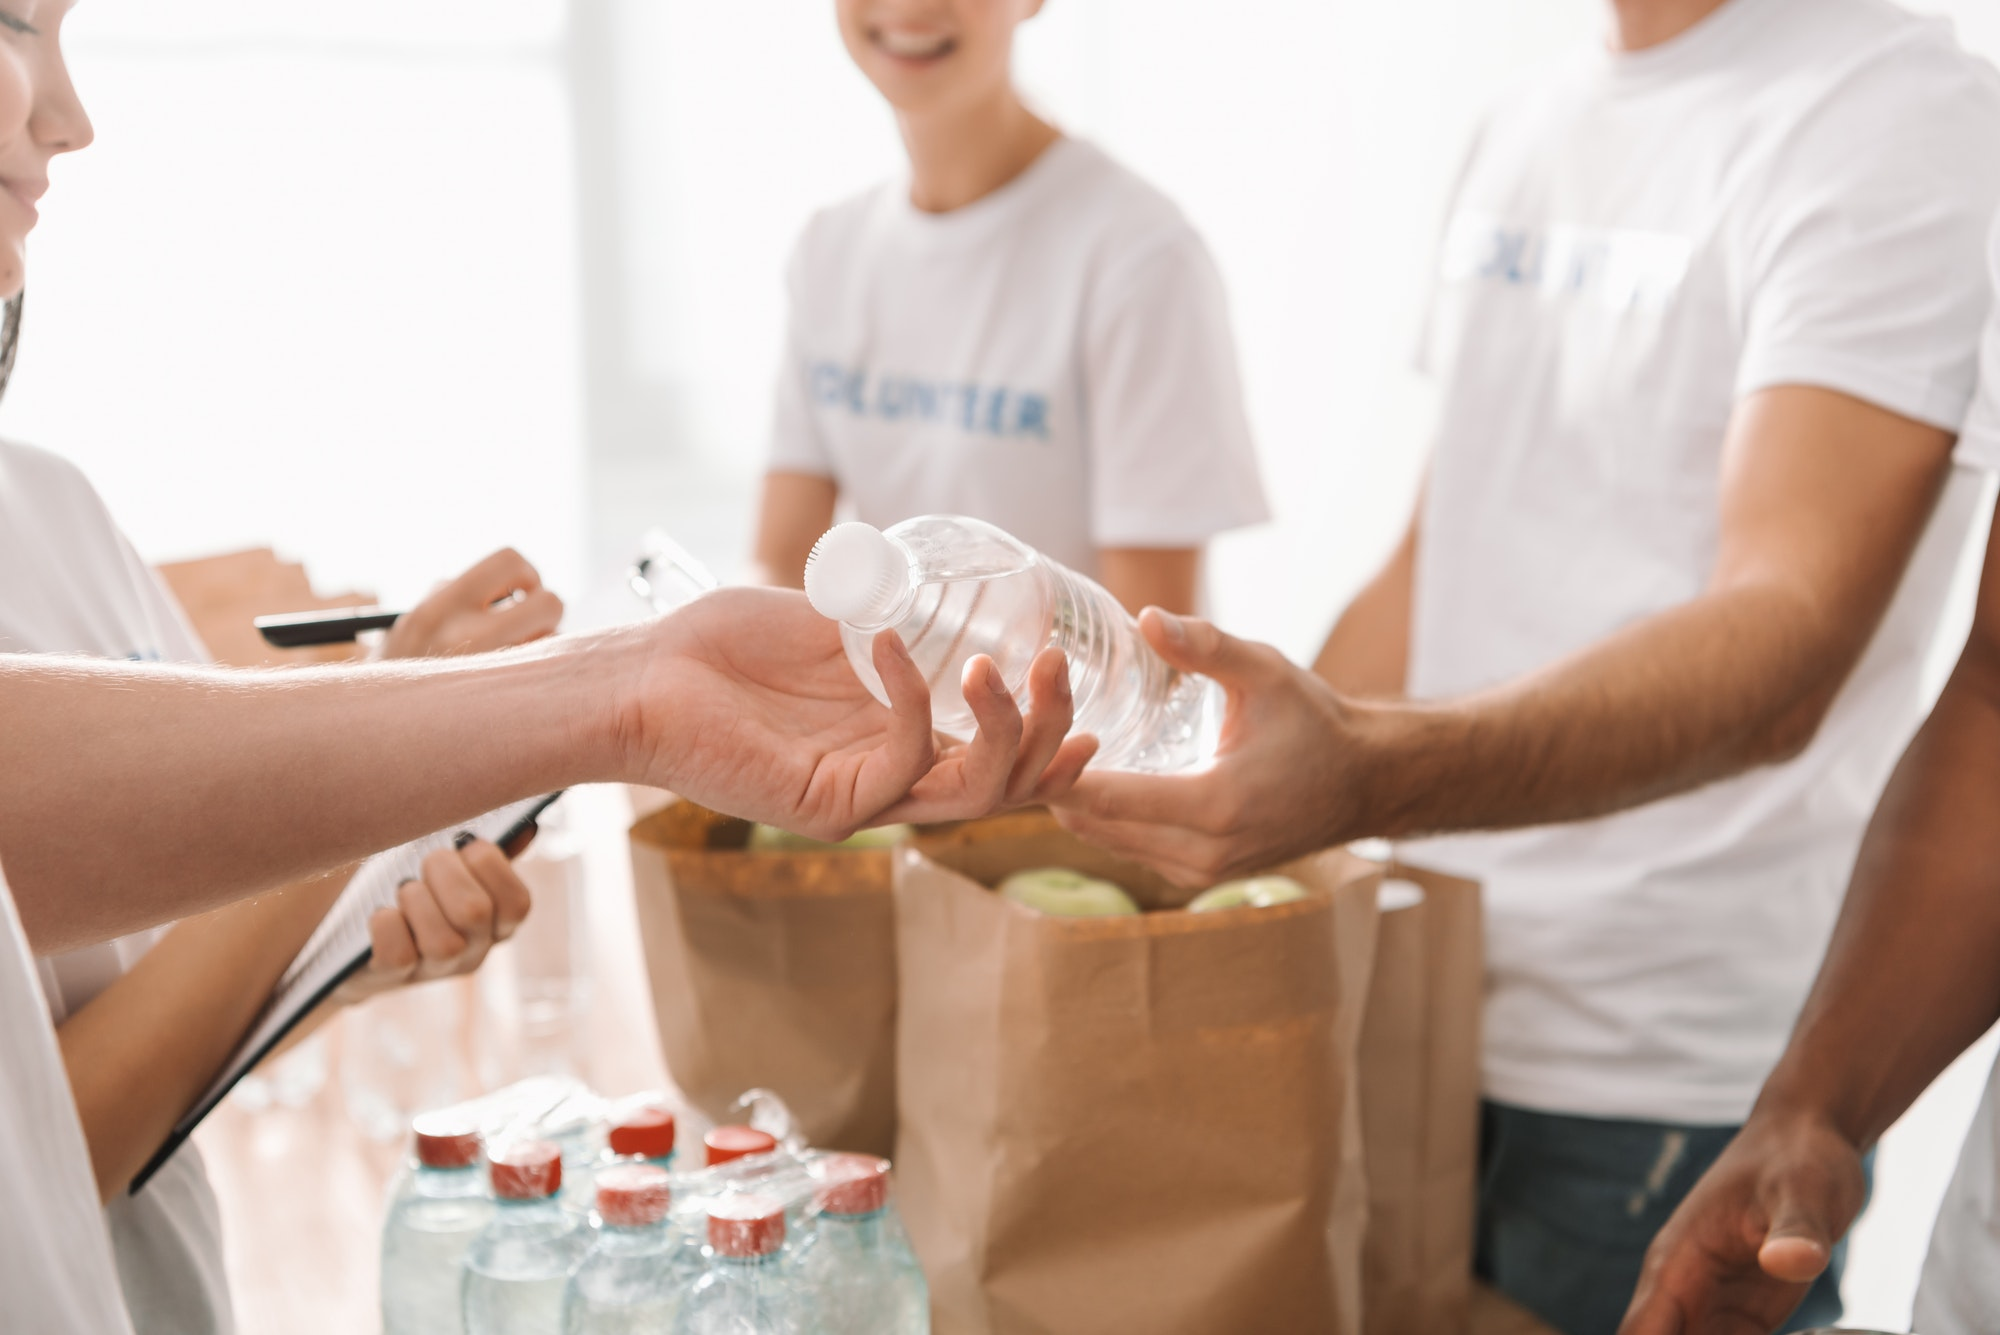 cropped-shot-of-volunteers-with-food-and-drinks-for-charity.jpg